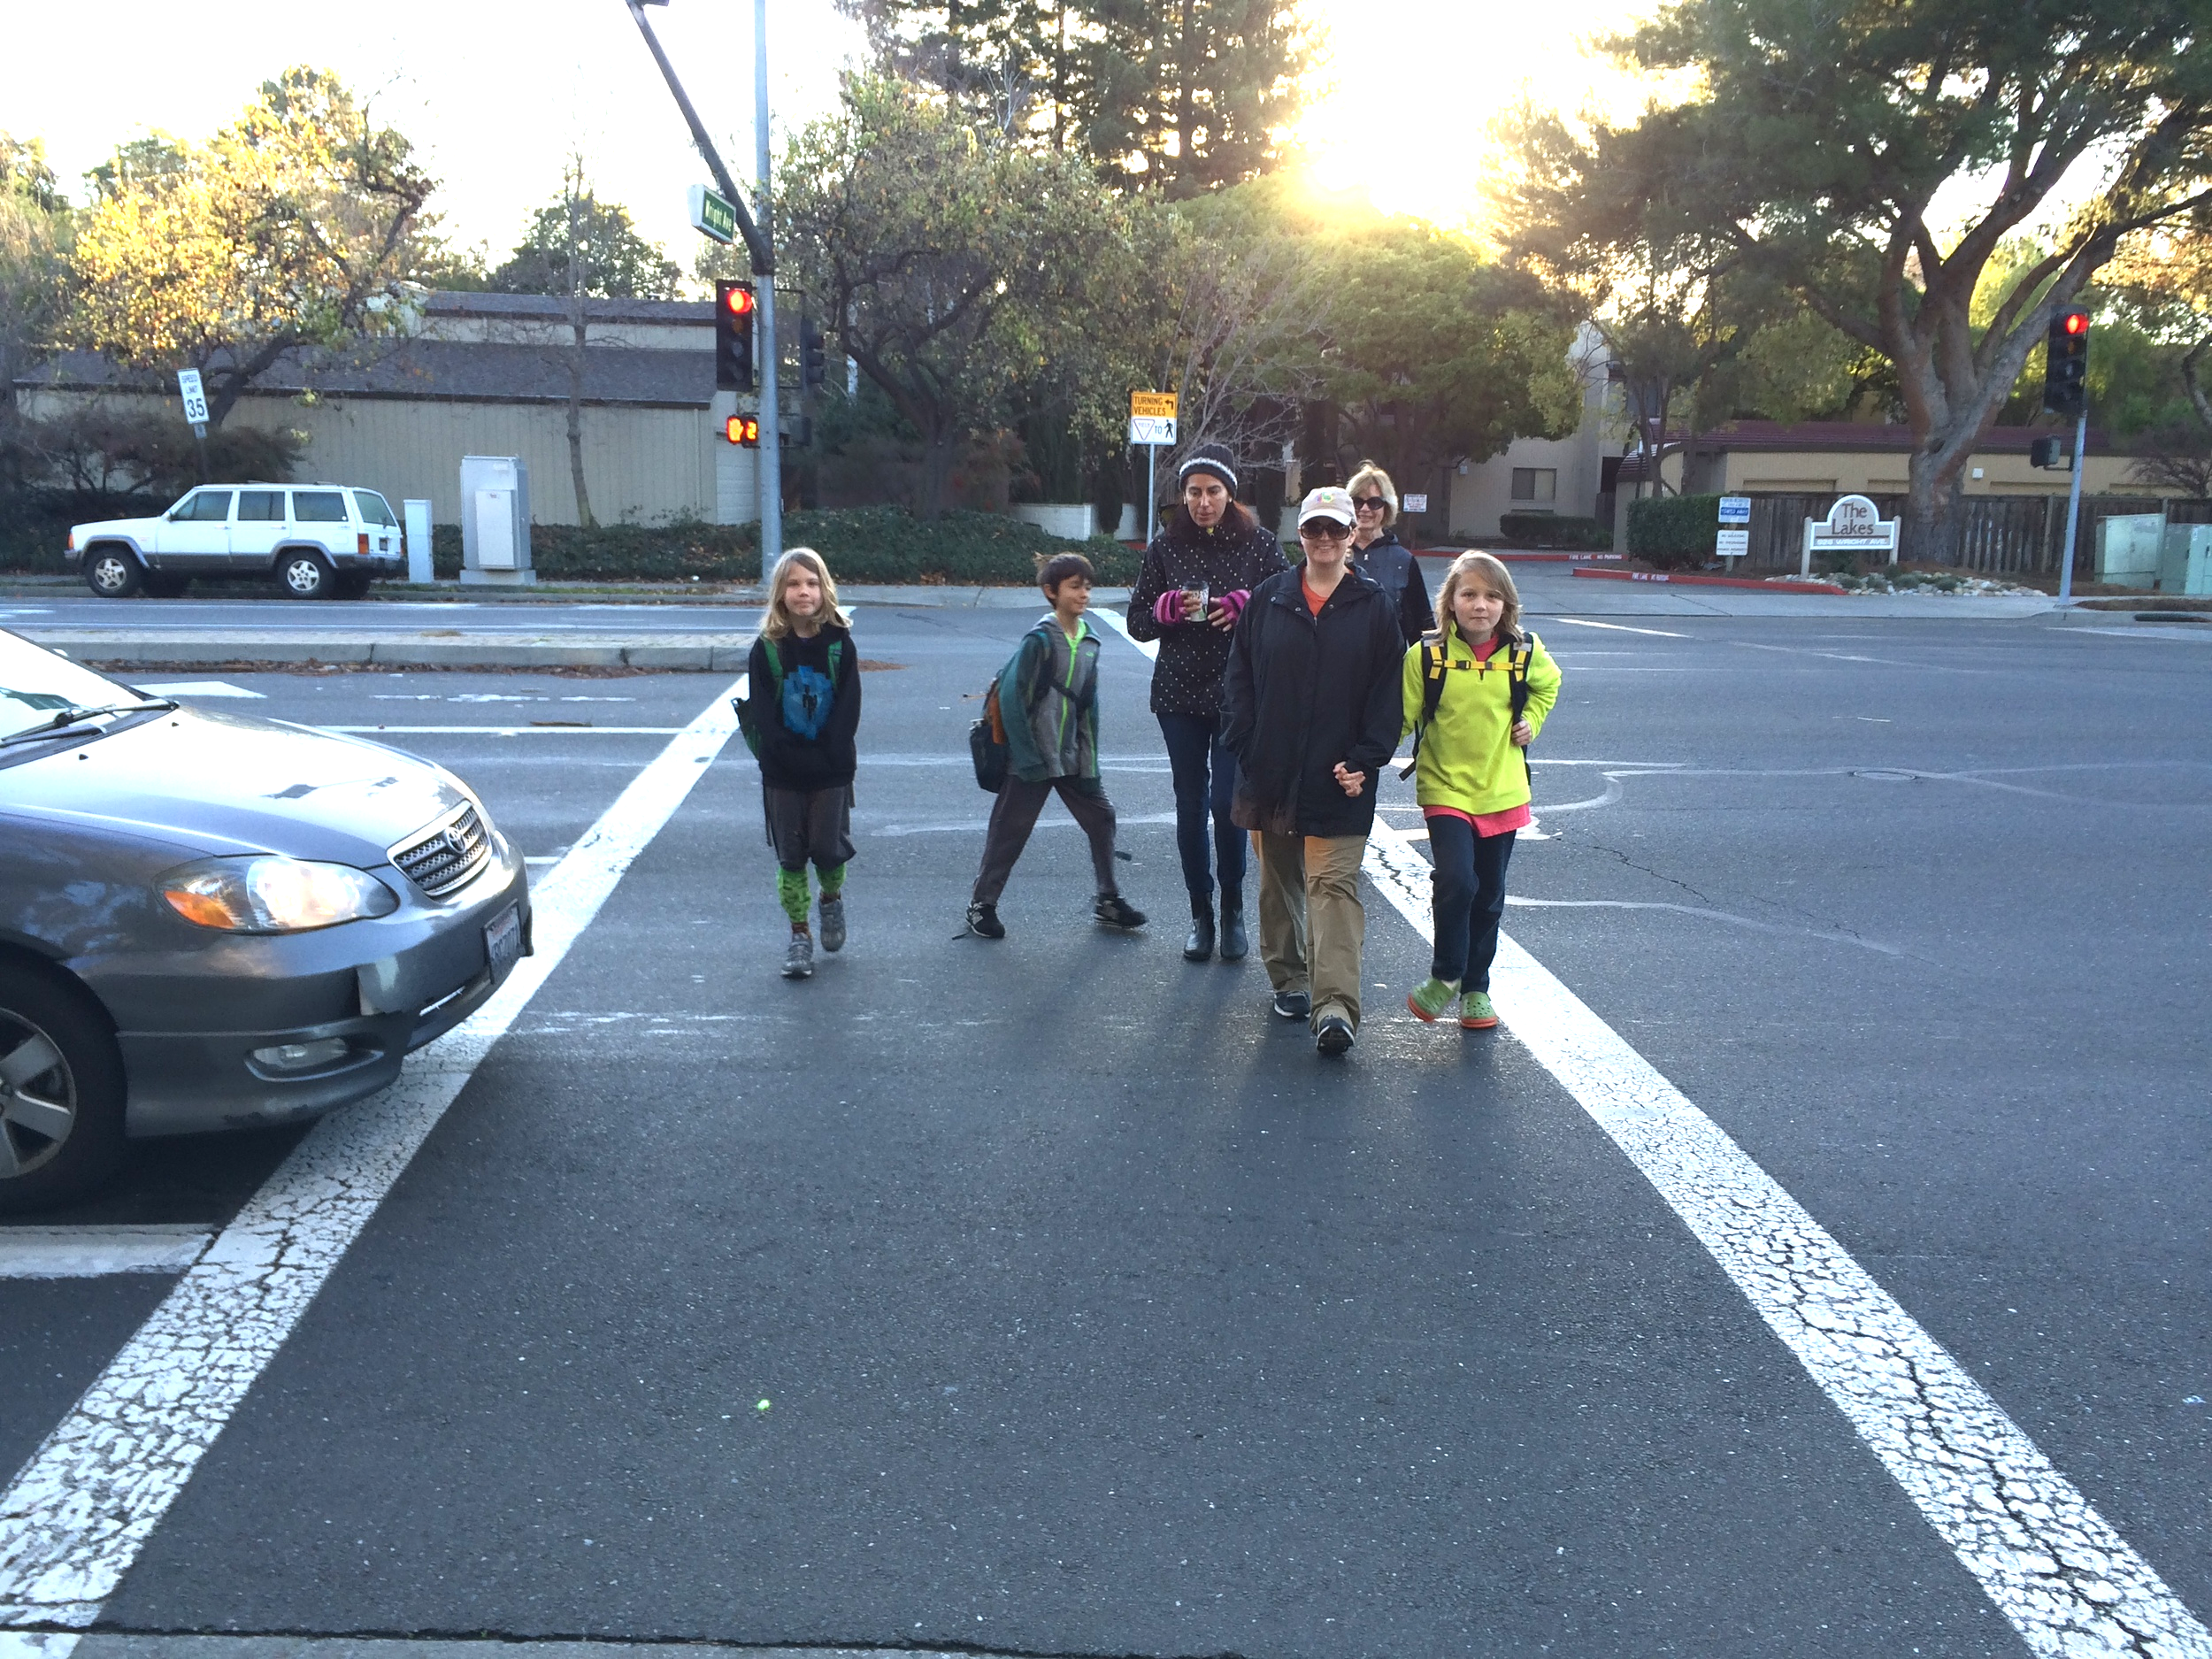 When these people have a walk signal, cars heading into the sun wait at a red light. They no longer have to worry about sun-blind drivers turning left into them.